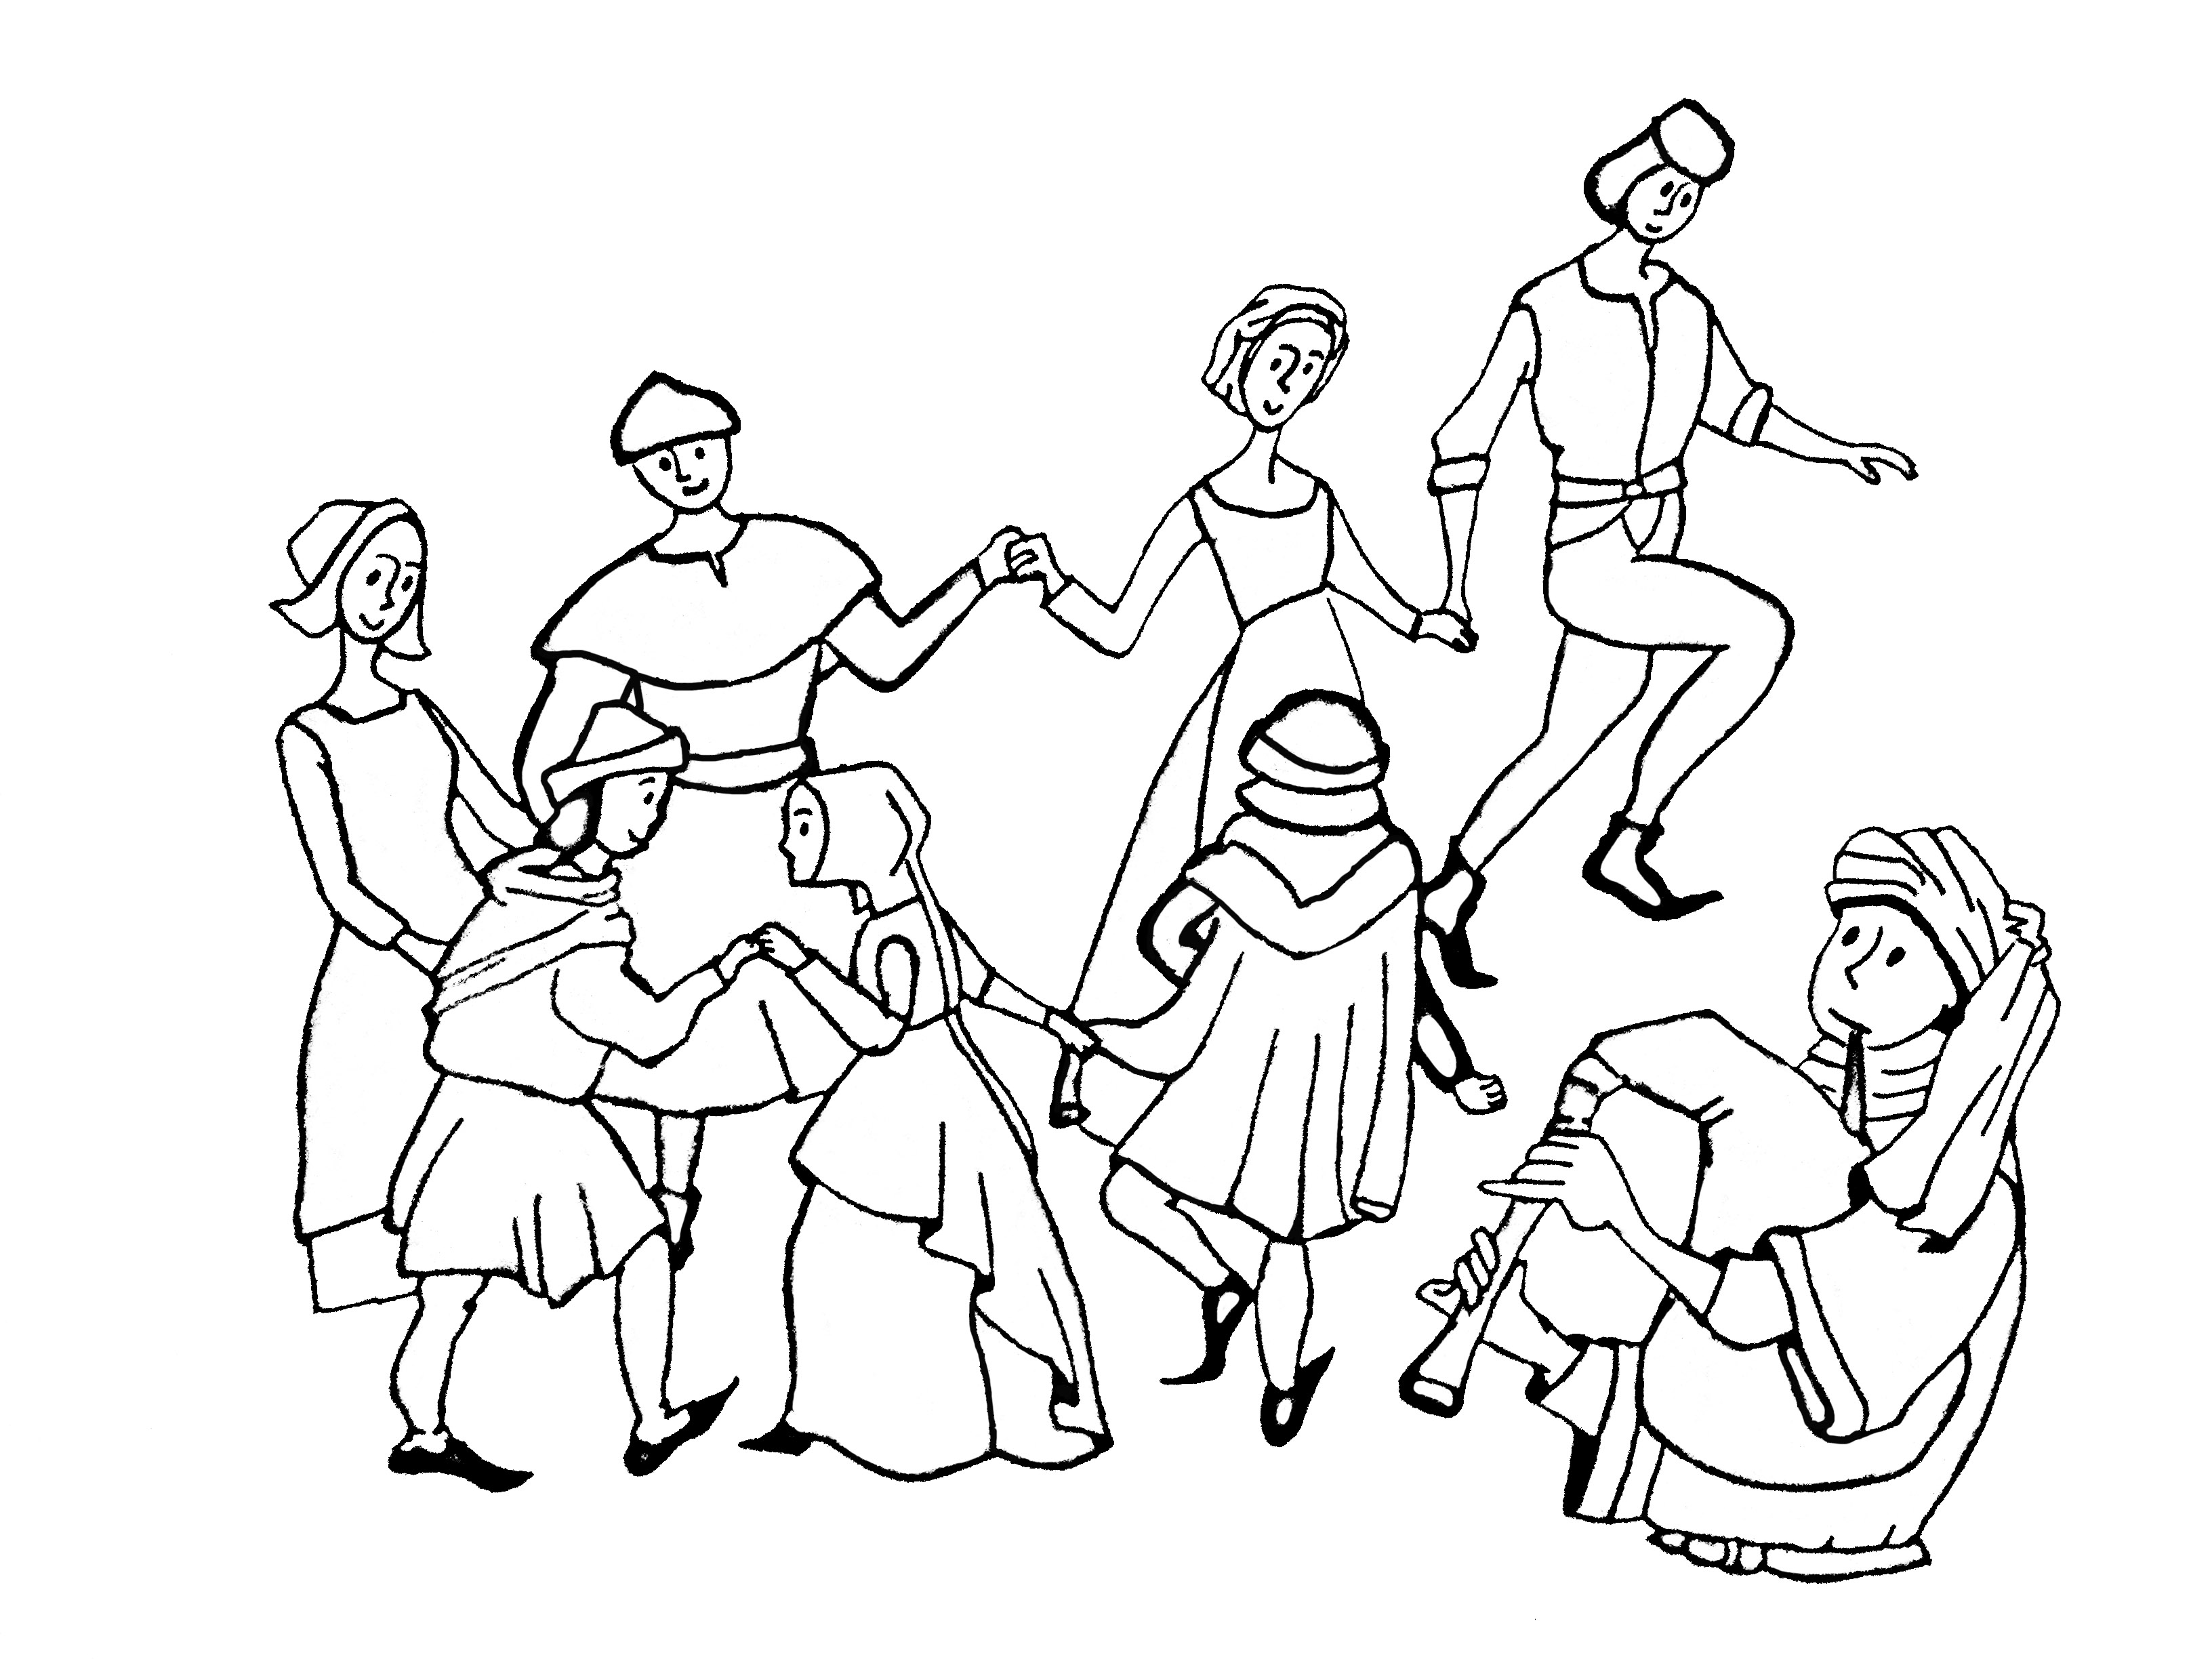 Middle ages - Coloring Pages for Adults